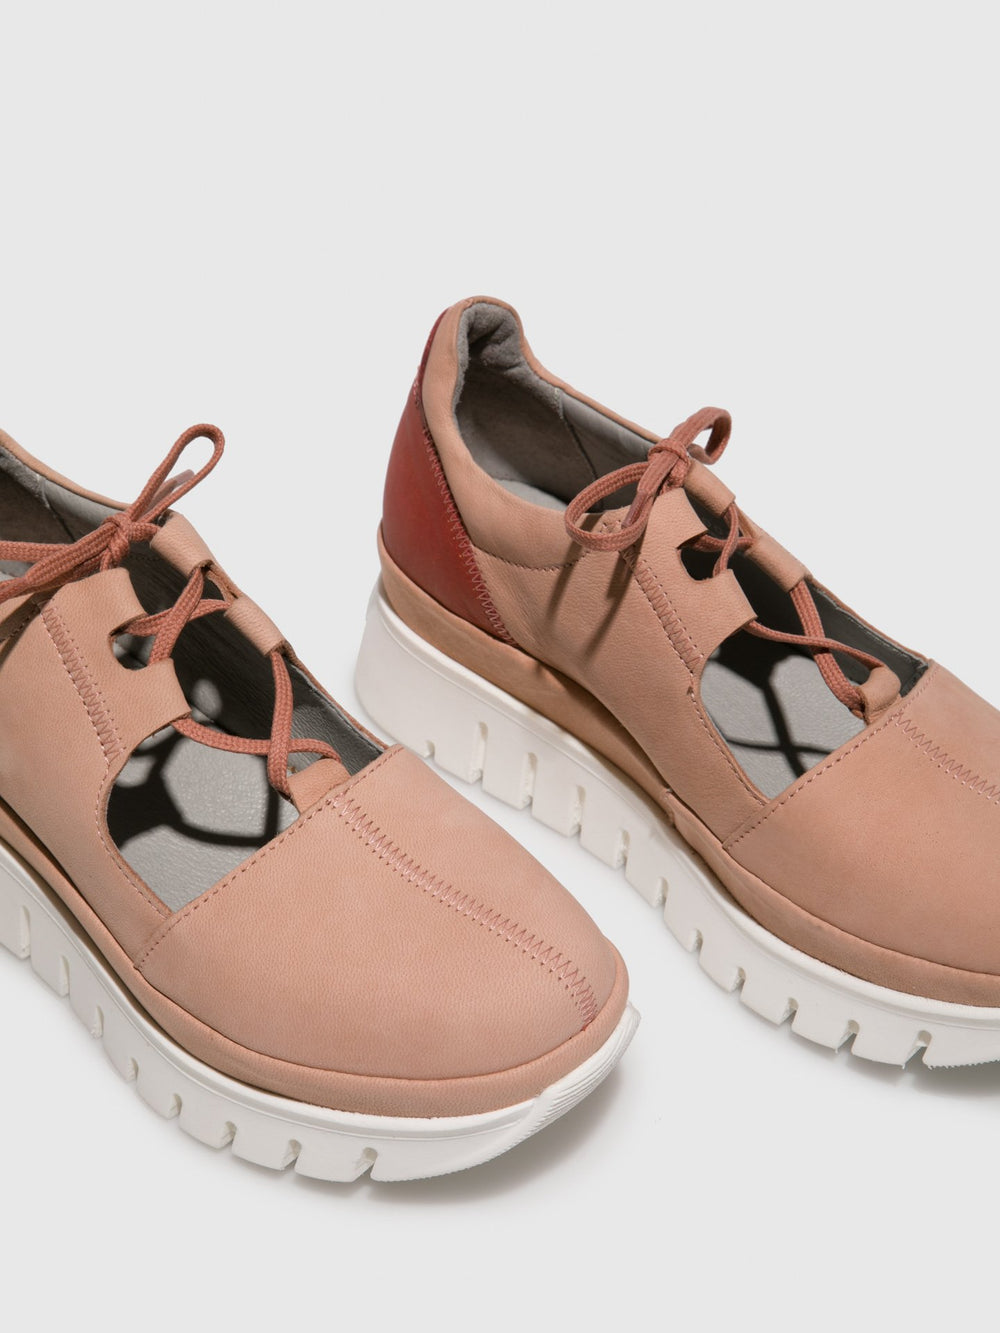 LightPink Lace-up Shoes